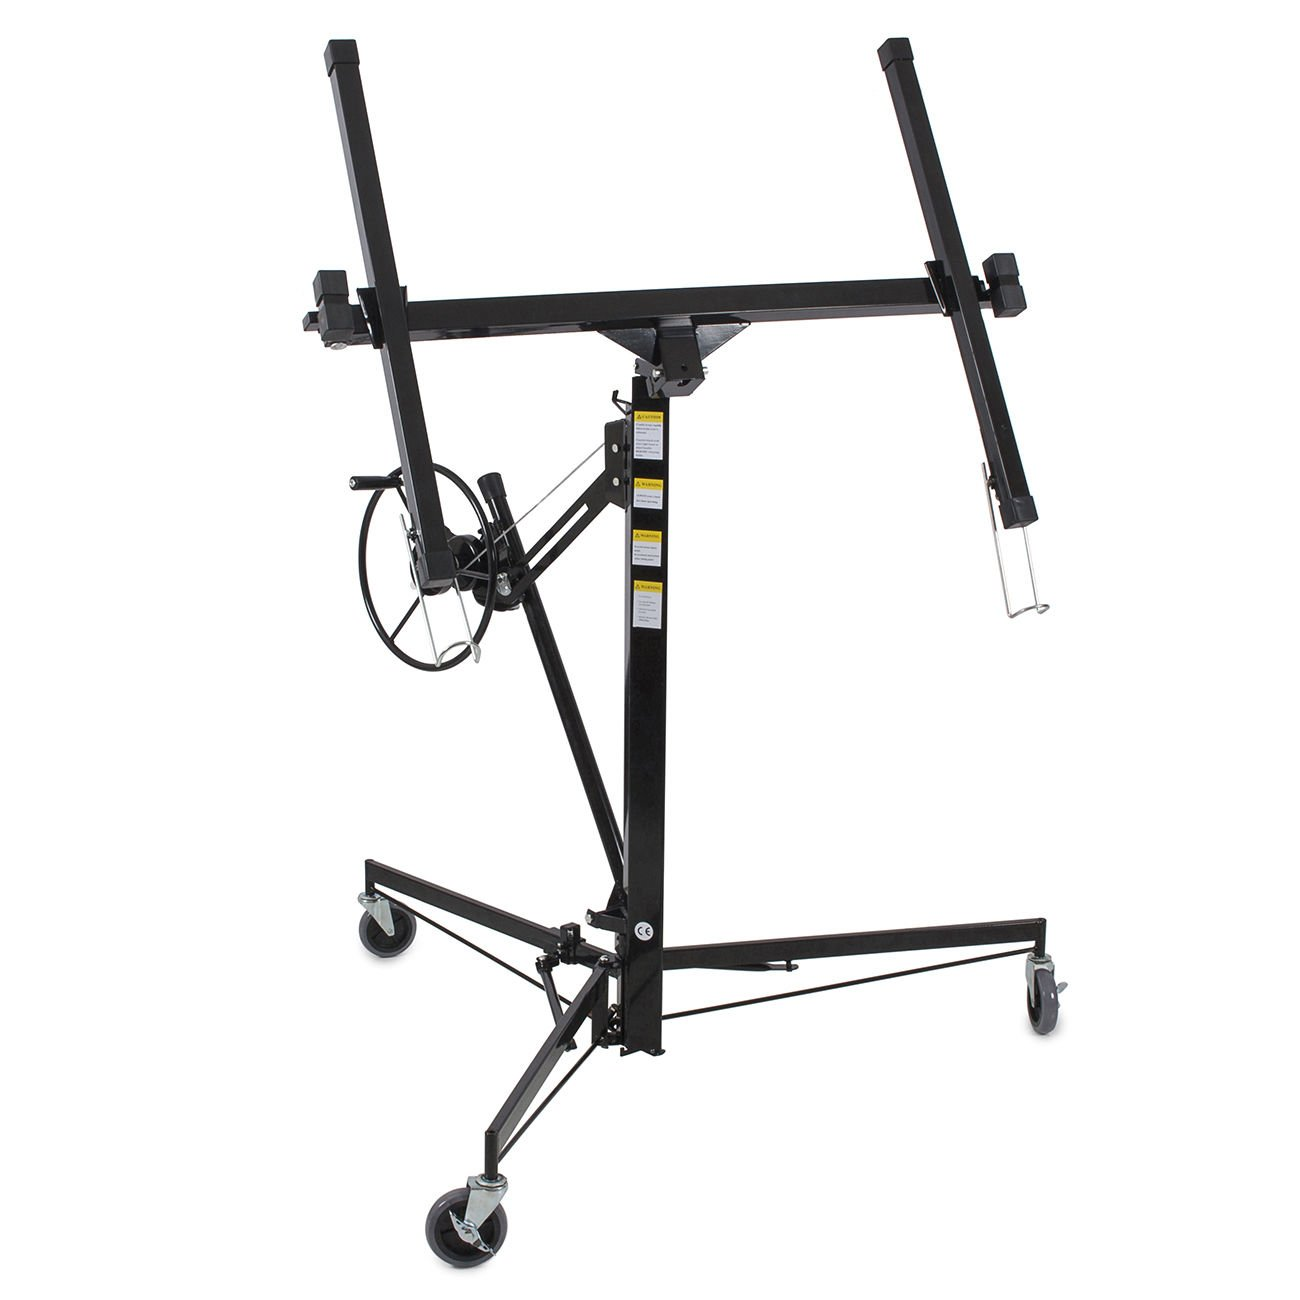 11' Drywall Lift Panel Hoist Dry Wall Jack Rolling Caster Lifter Lockable Black + FREE E - Book